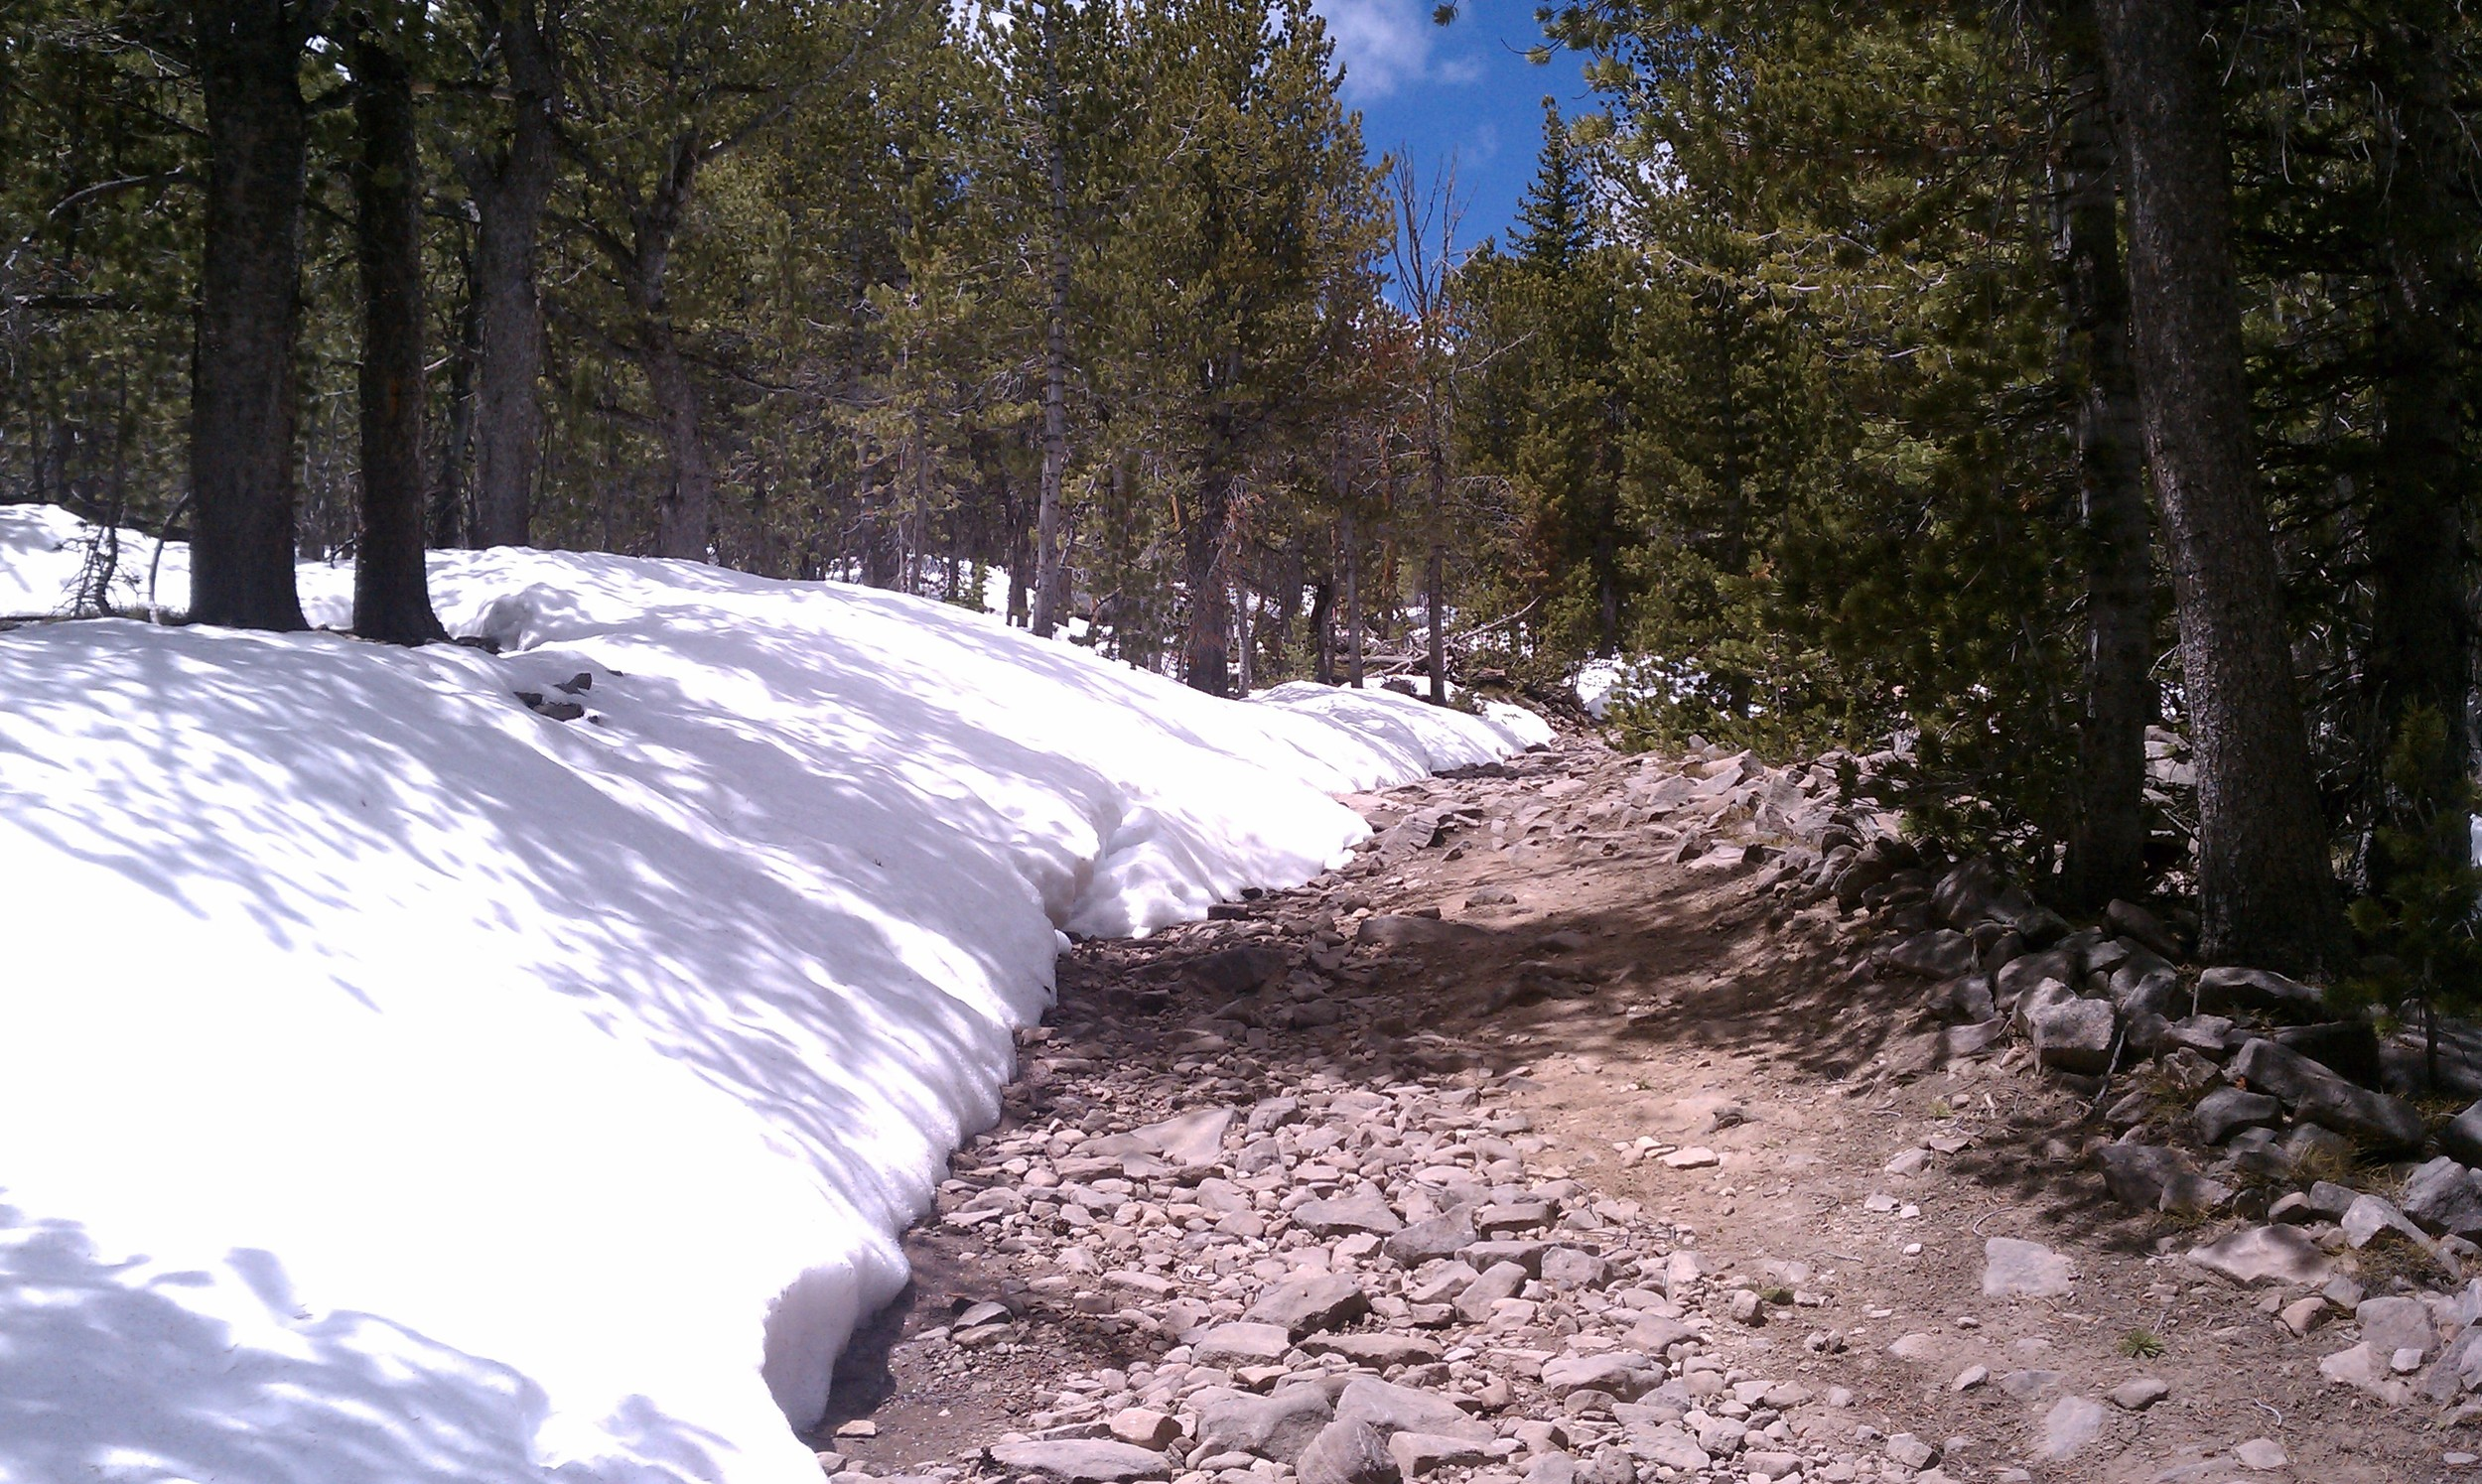 Wind River Range Area Conditions Update - Shoshone Lake Road at FS boundary